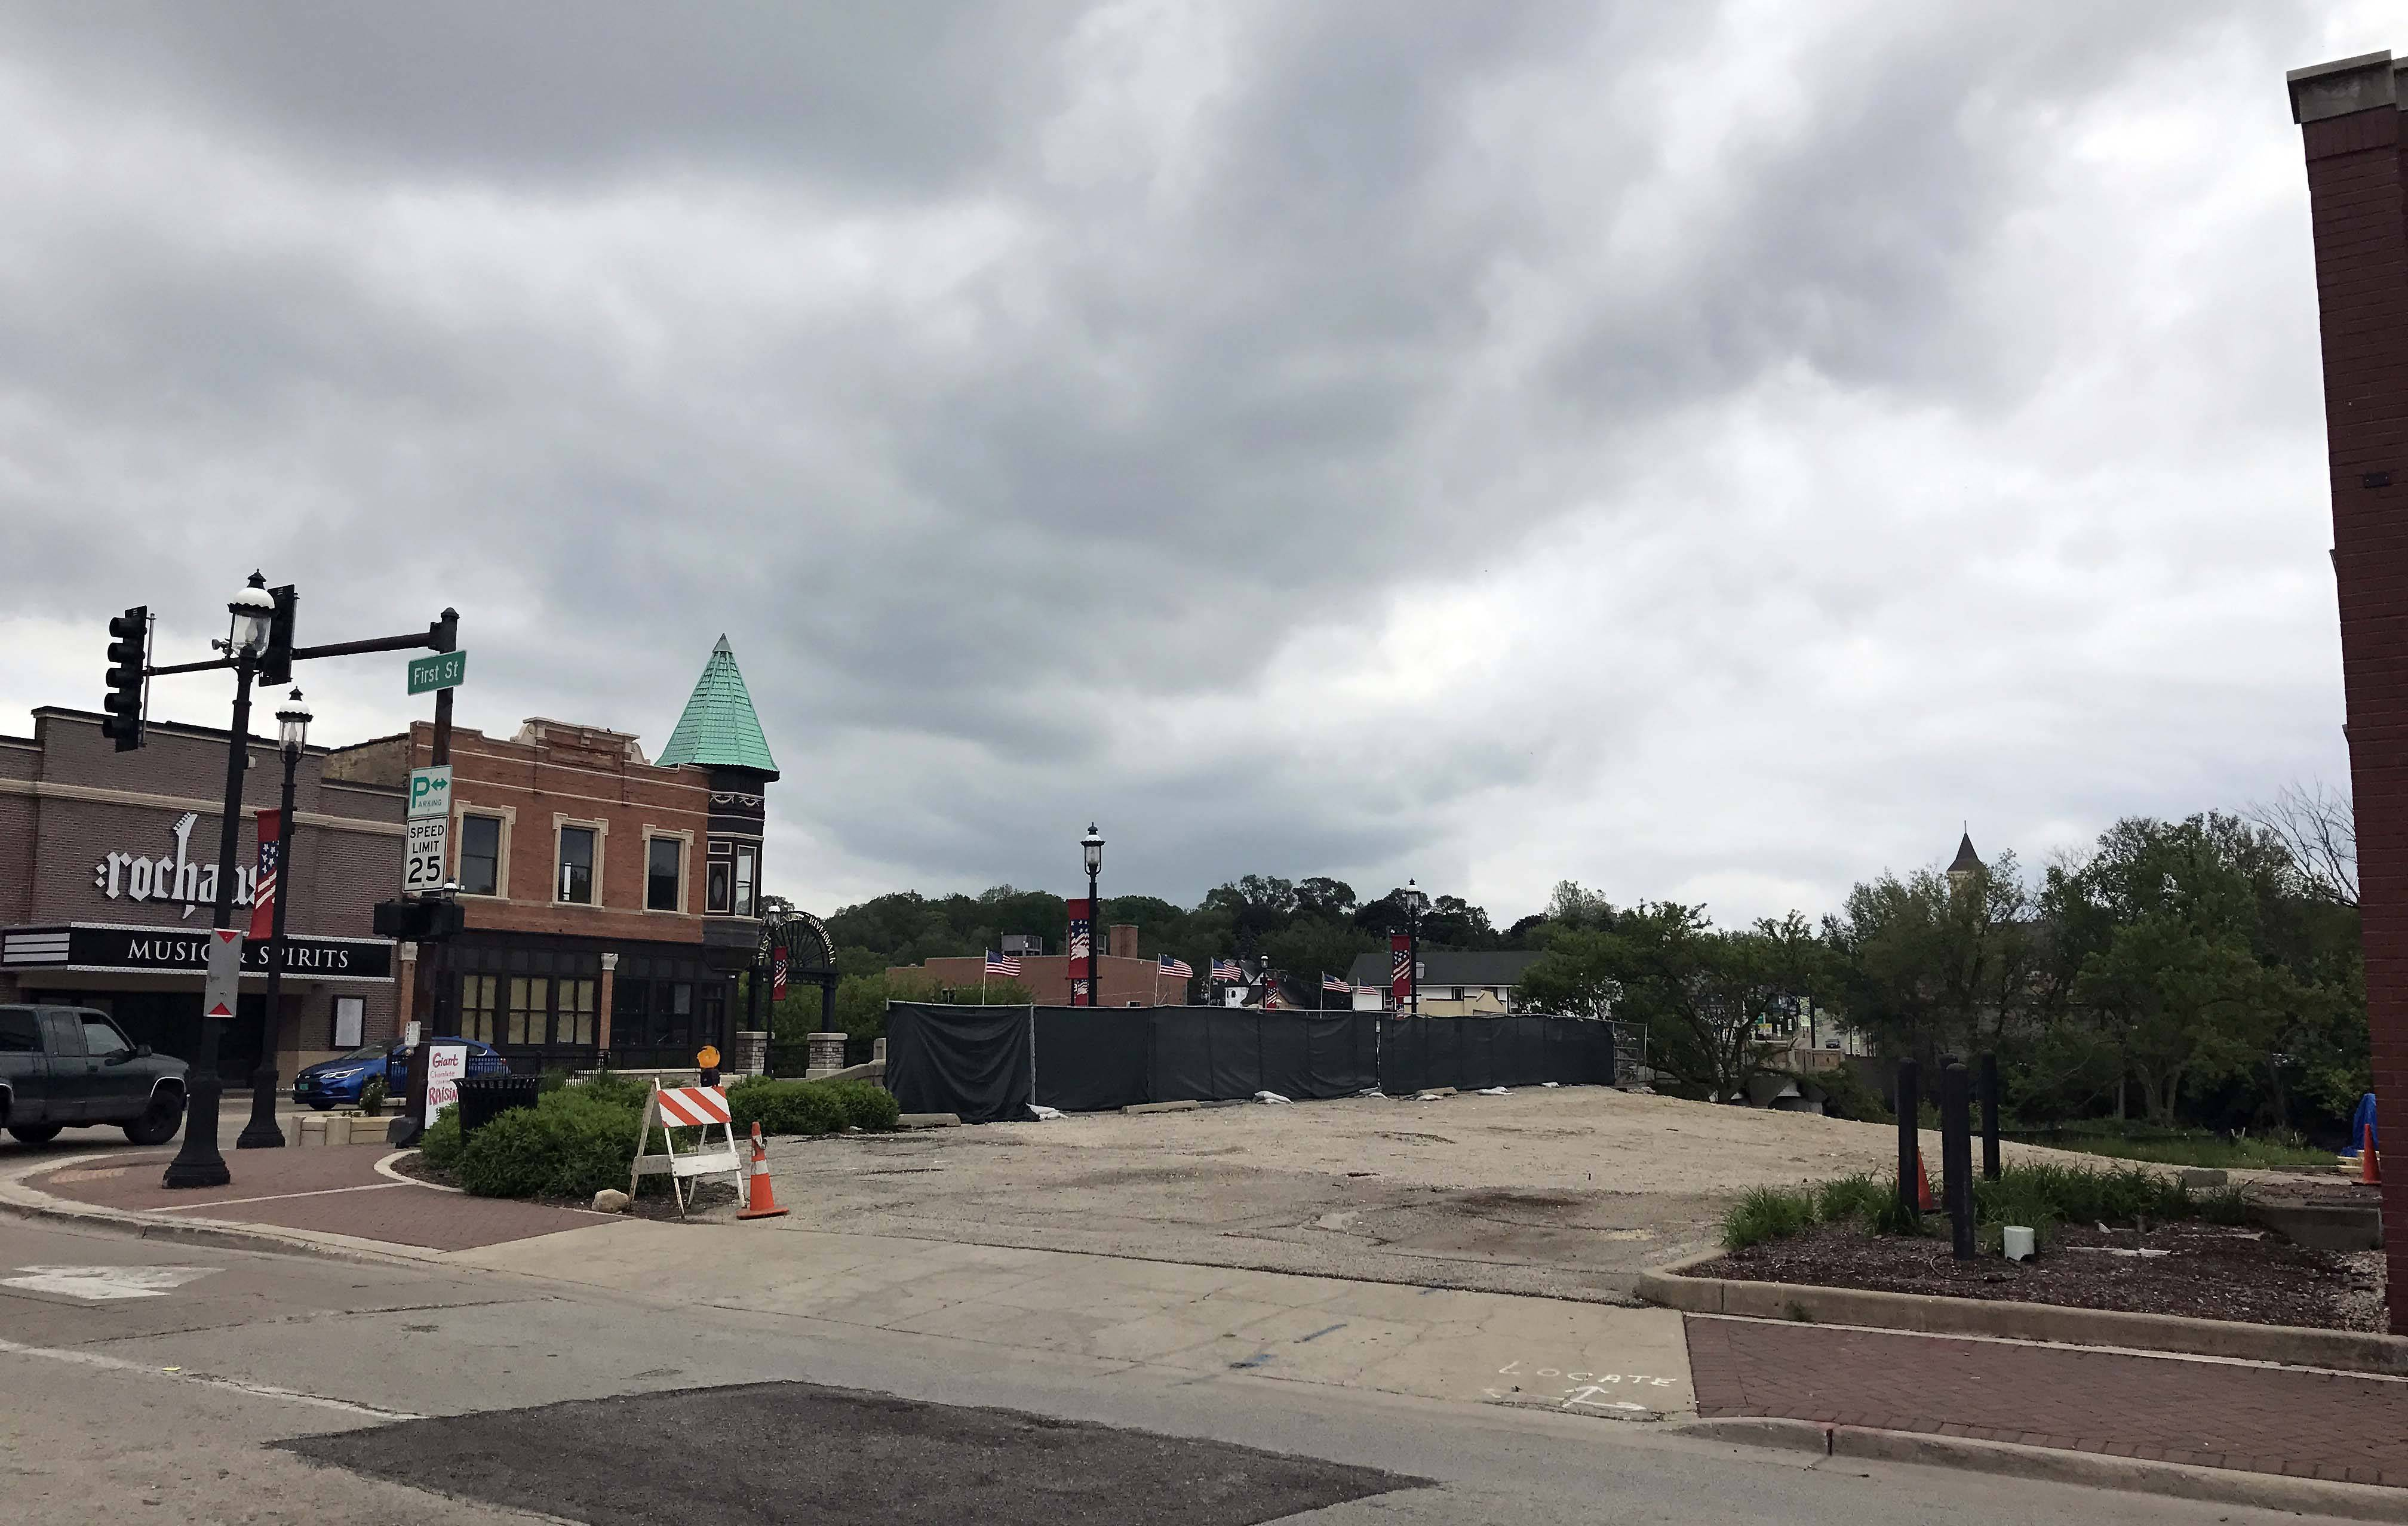 The southeast corner of First and Main streets in downtown West Dundee will be getting a facelift this summer if trustees move forward with a $1.12 million construction contract to improve the area.